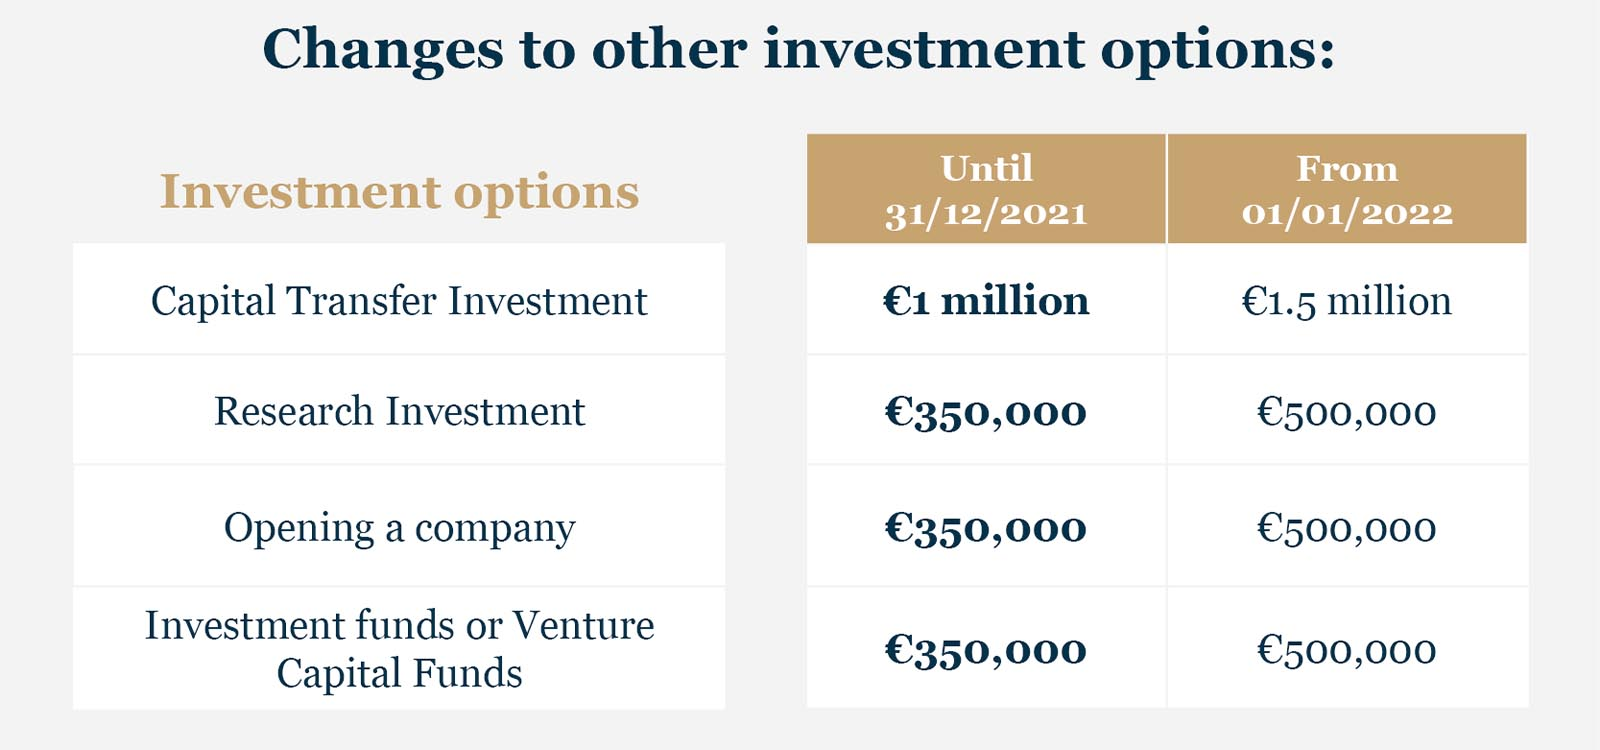 Changes to investment options